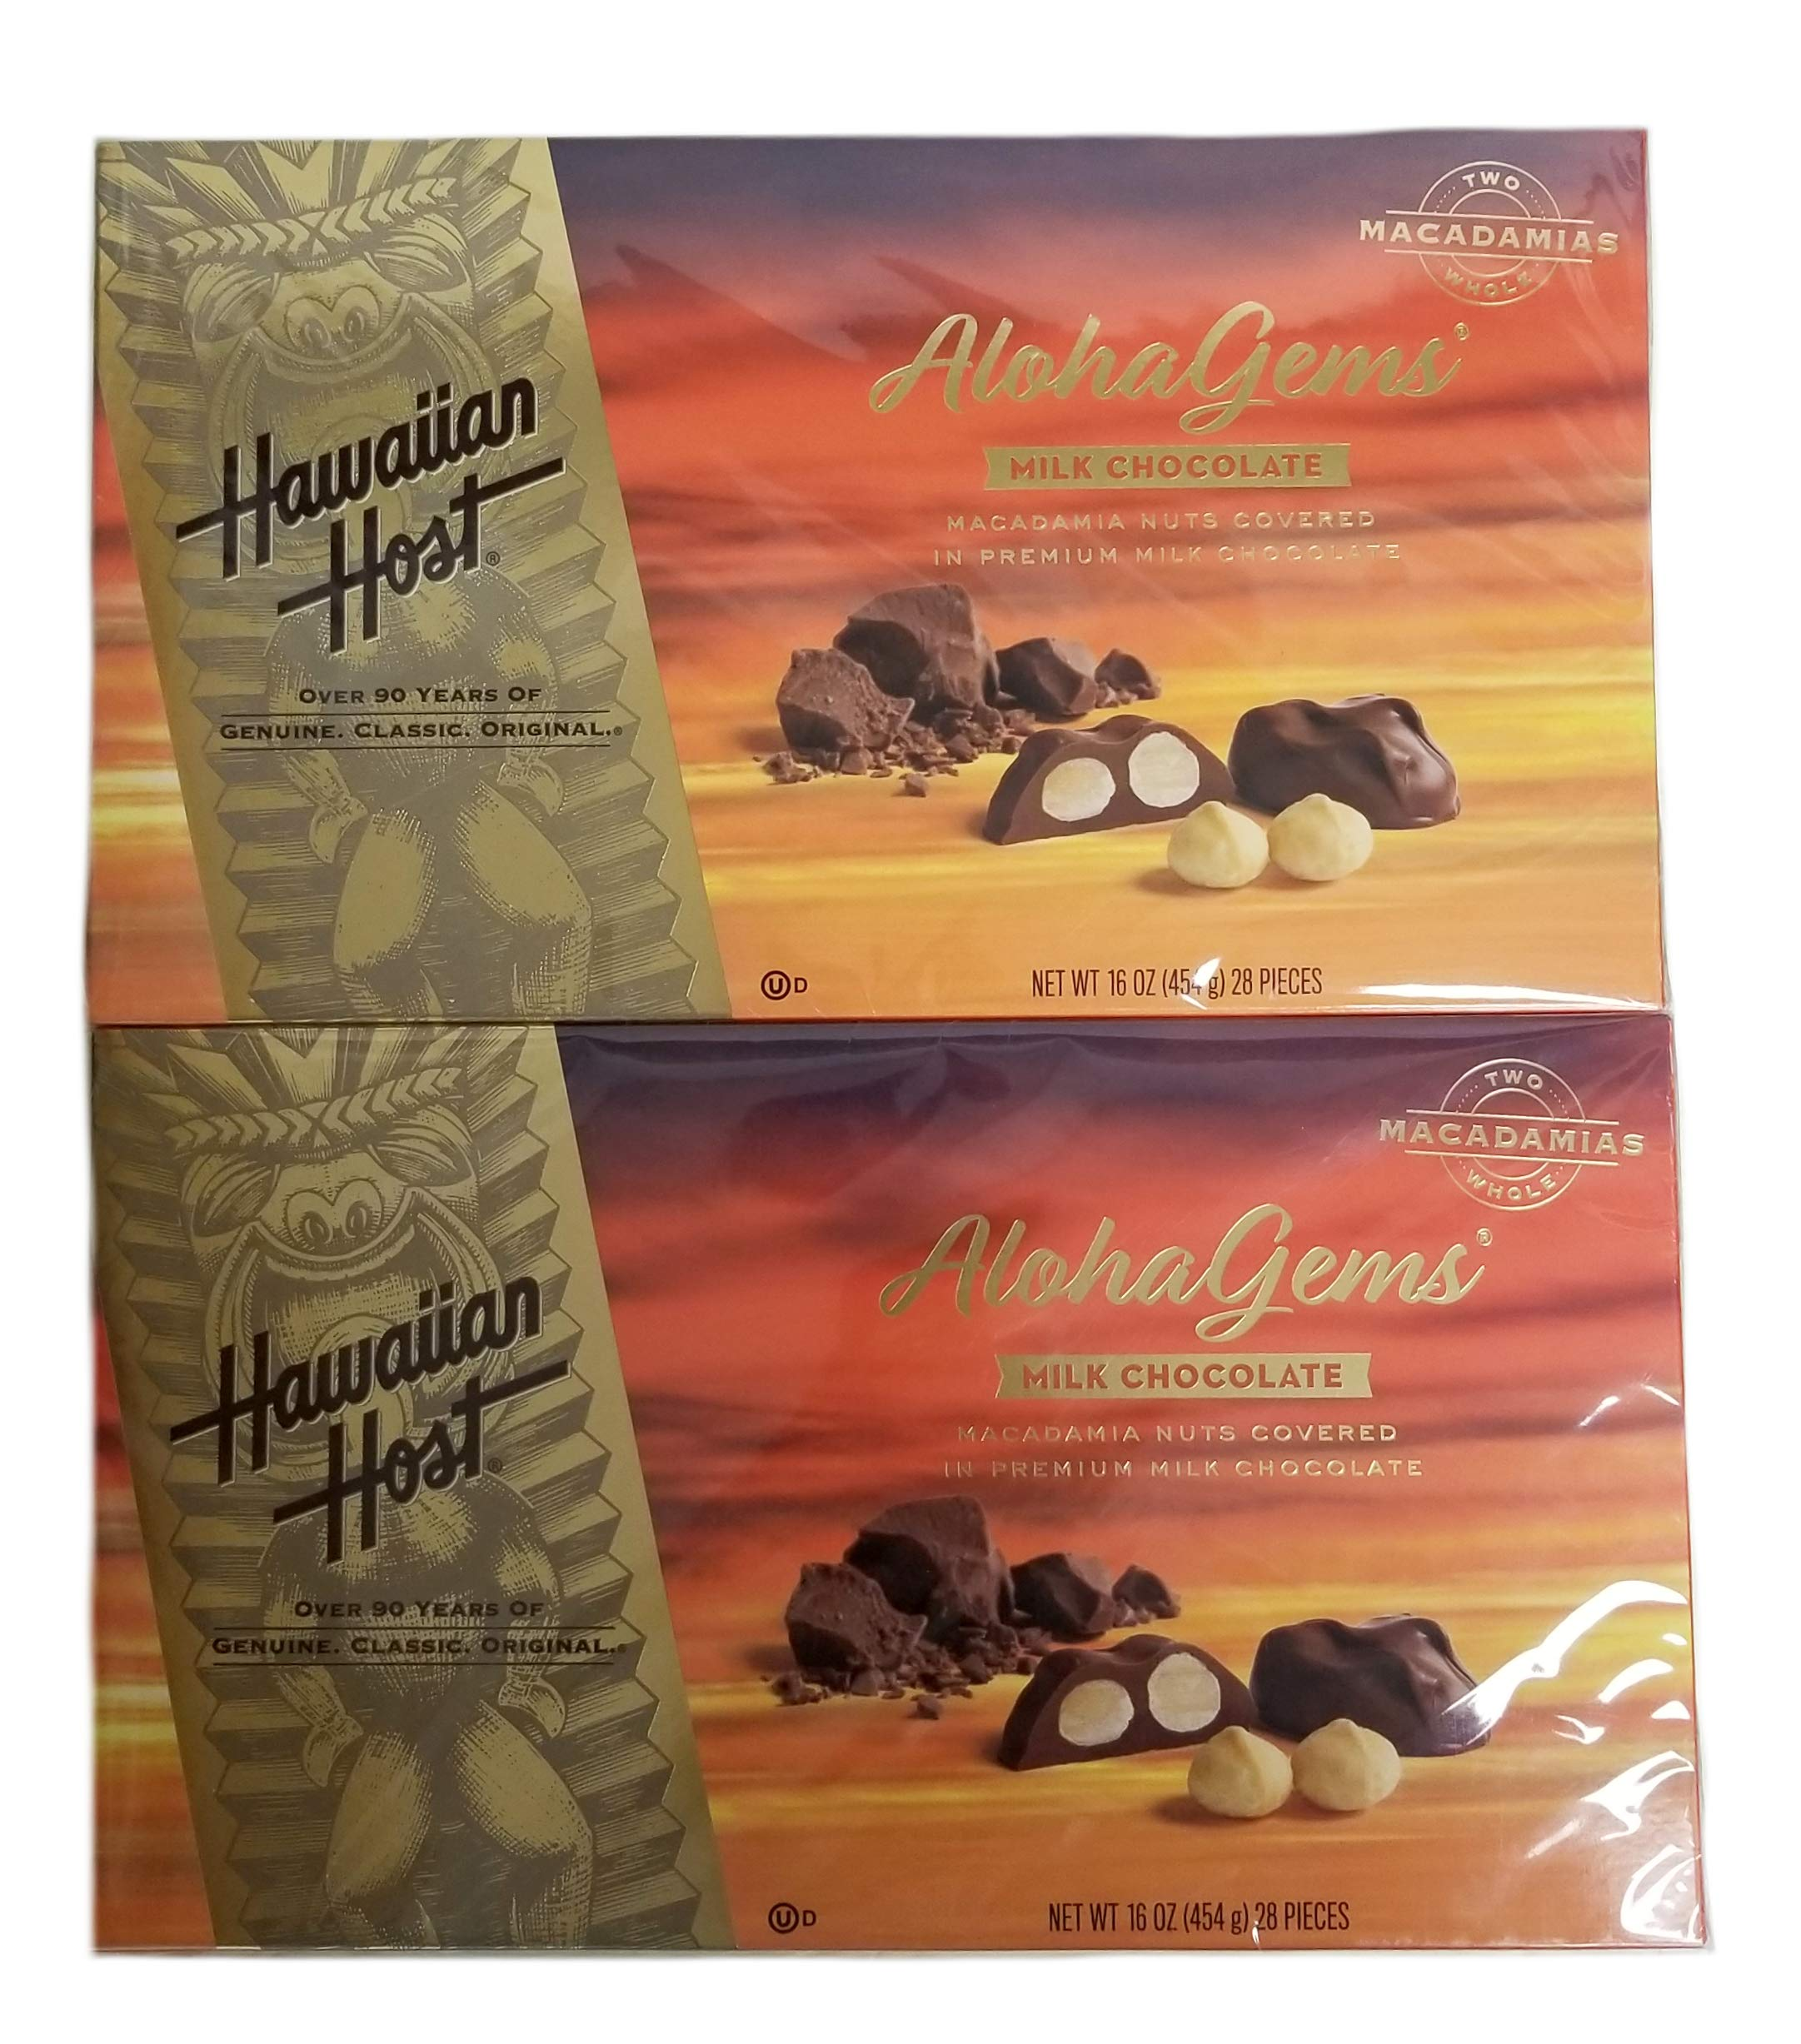 Aloha Gems Milk Chocolate Macadamia Nuts Covered In Premium Milk Chocolate - 2 Pack: 16 oz. (28 Pieces) each by Maxtrv